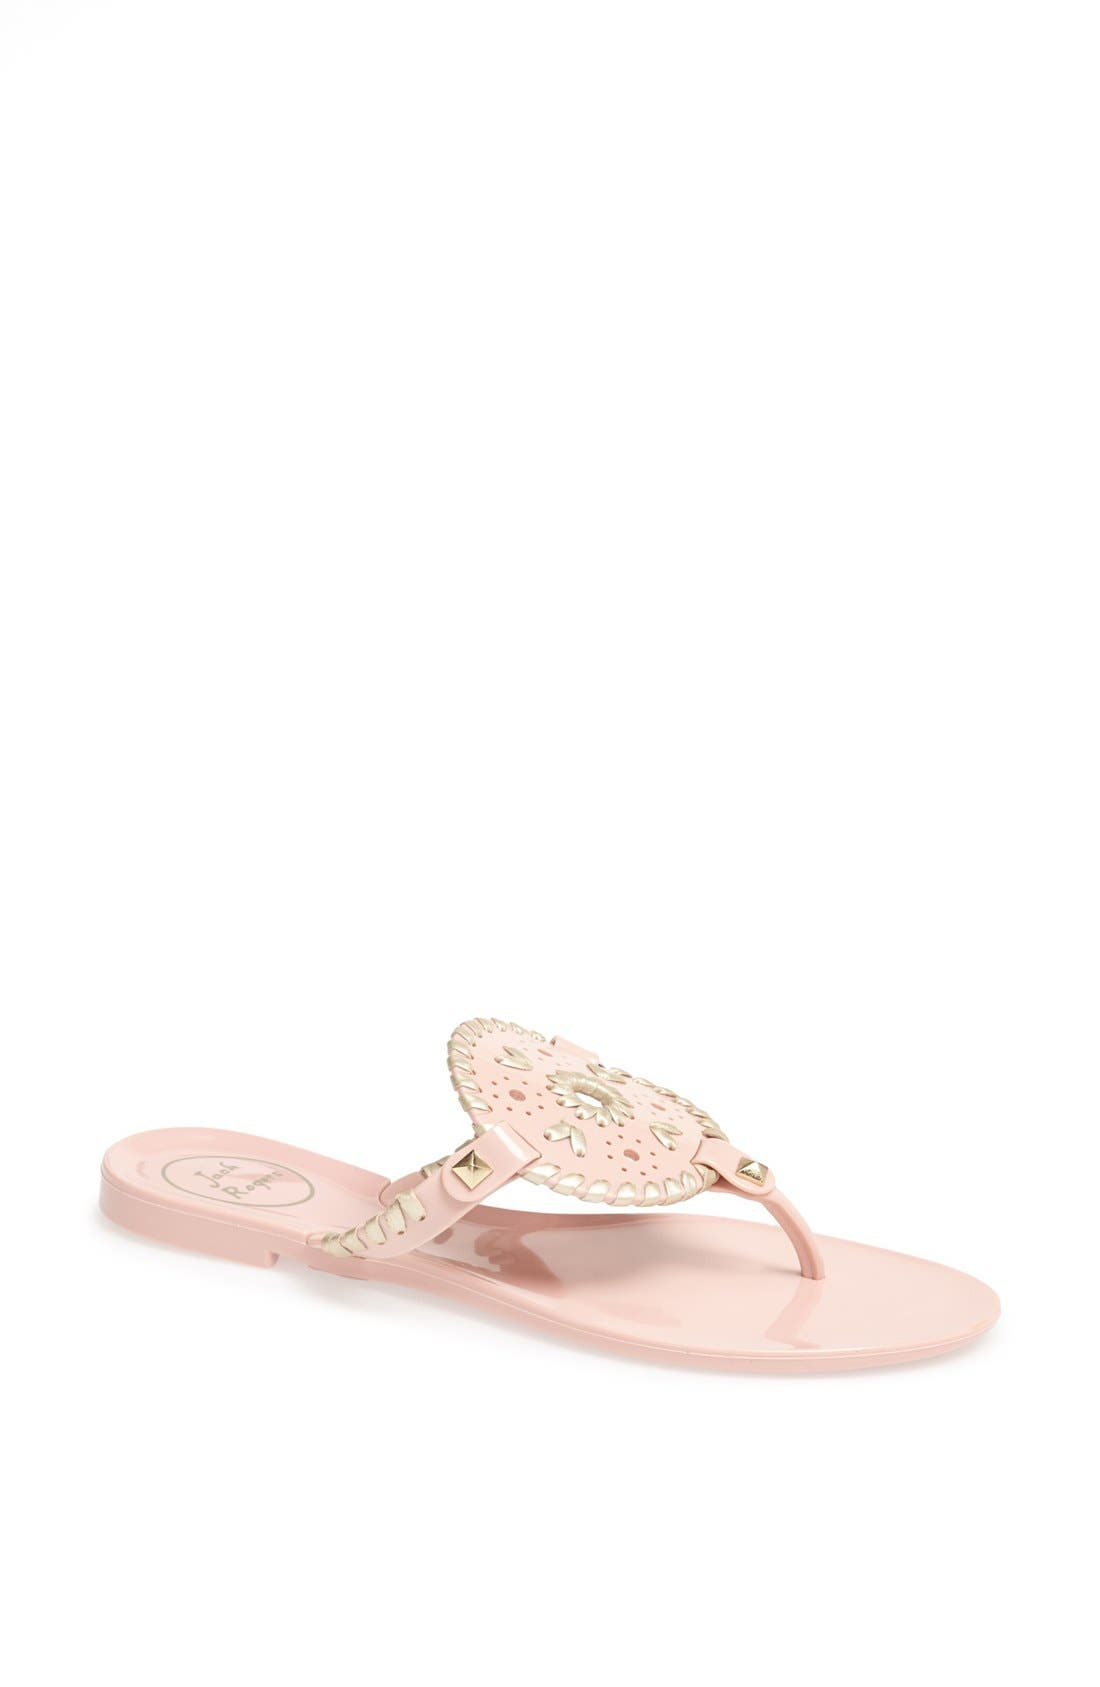 Alternate Image 1 Selected - Jack Rogers 'Georgica' Jelly Flip Flop (Women)